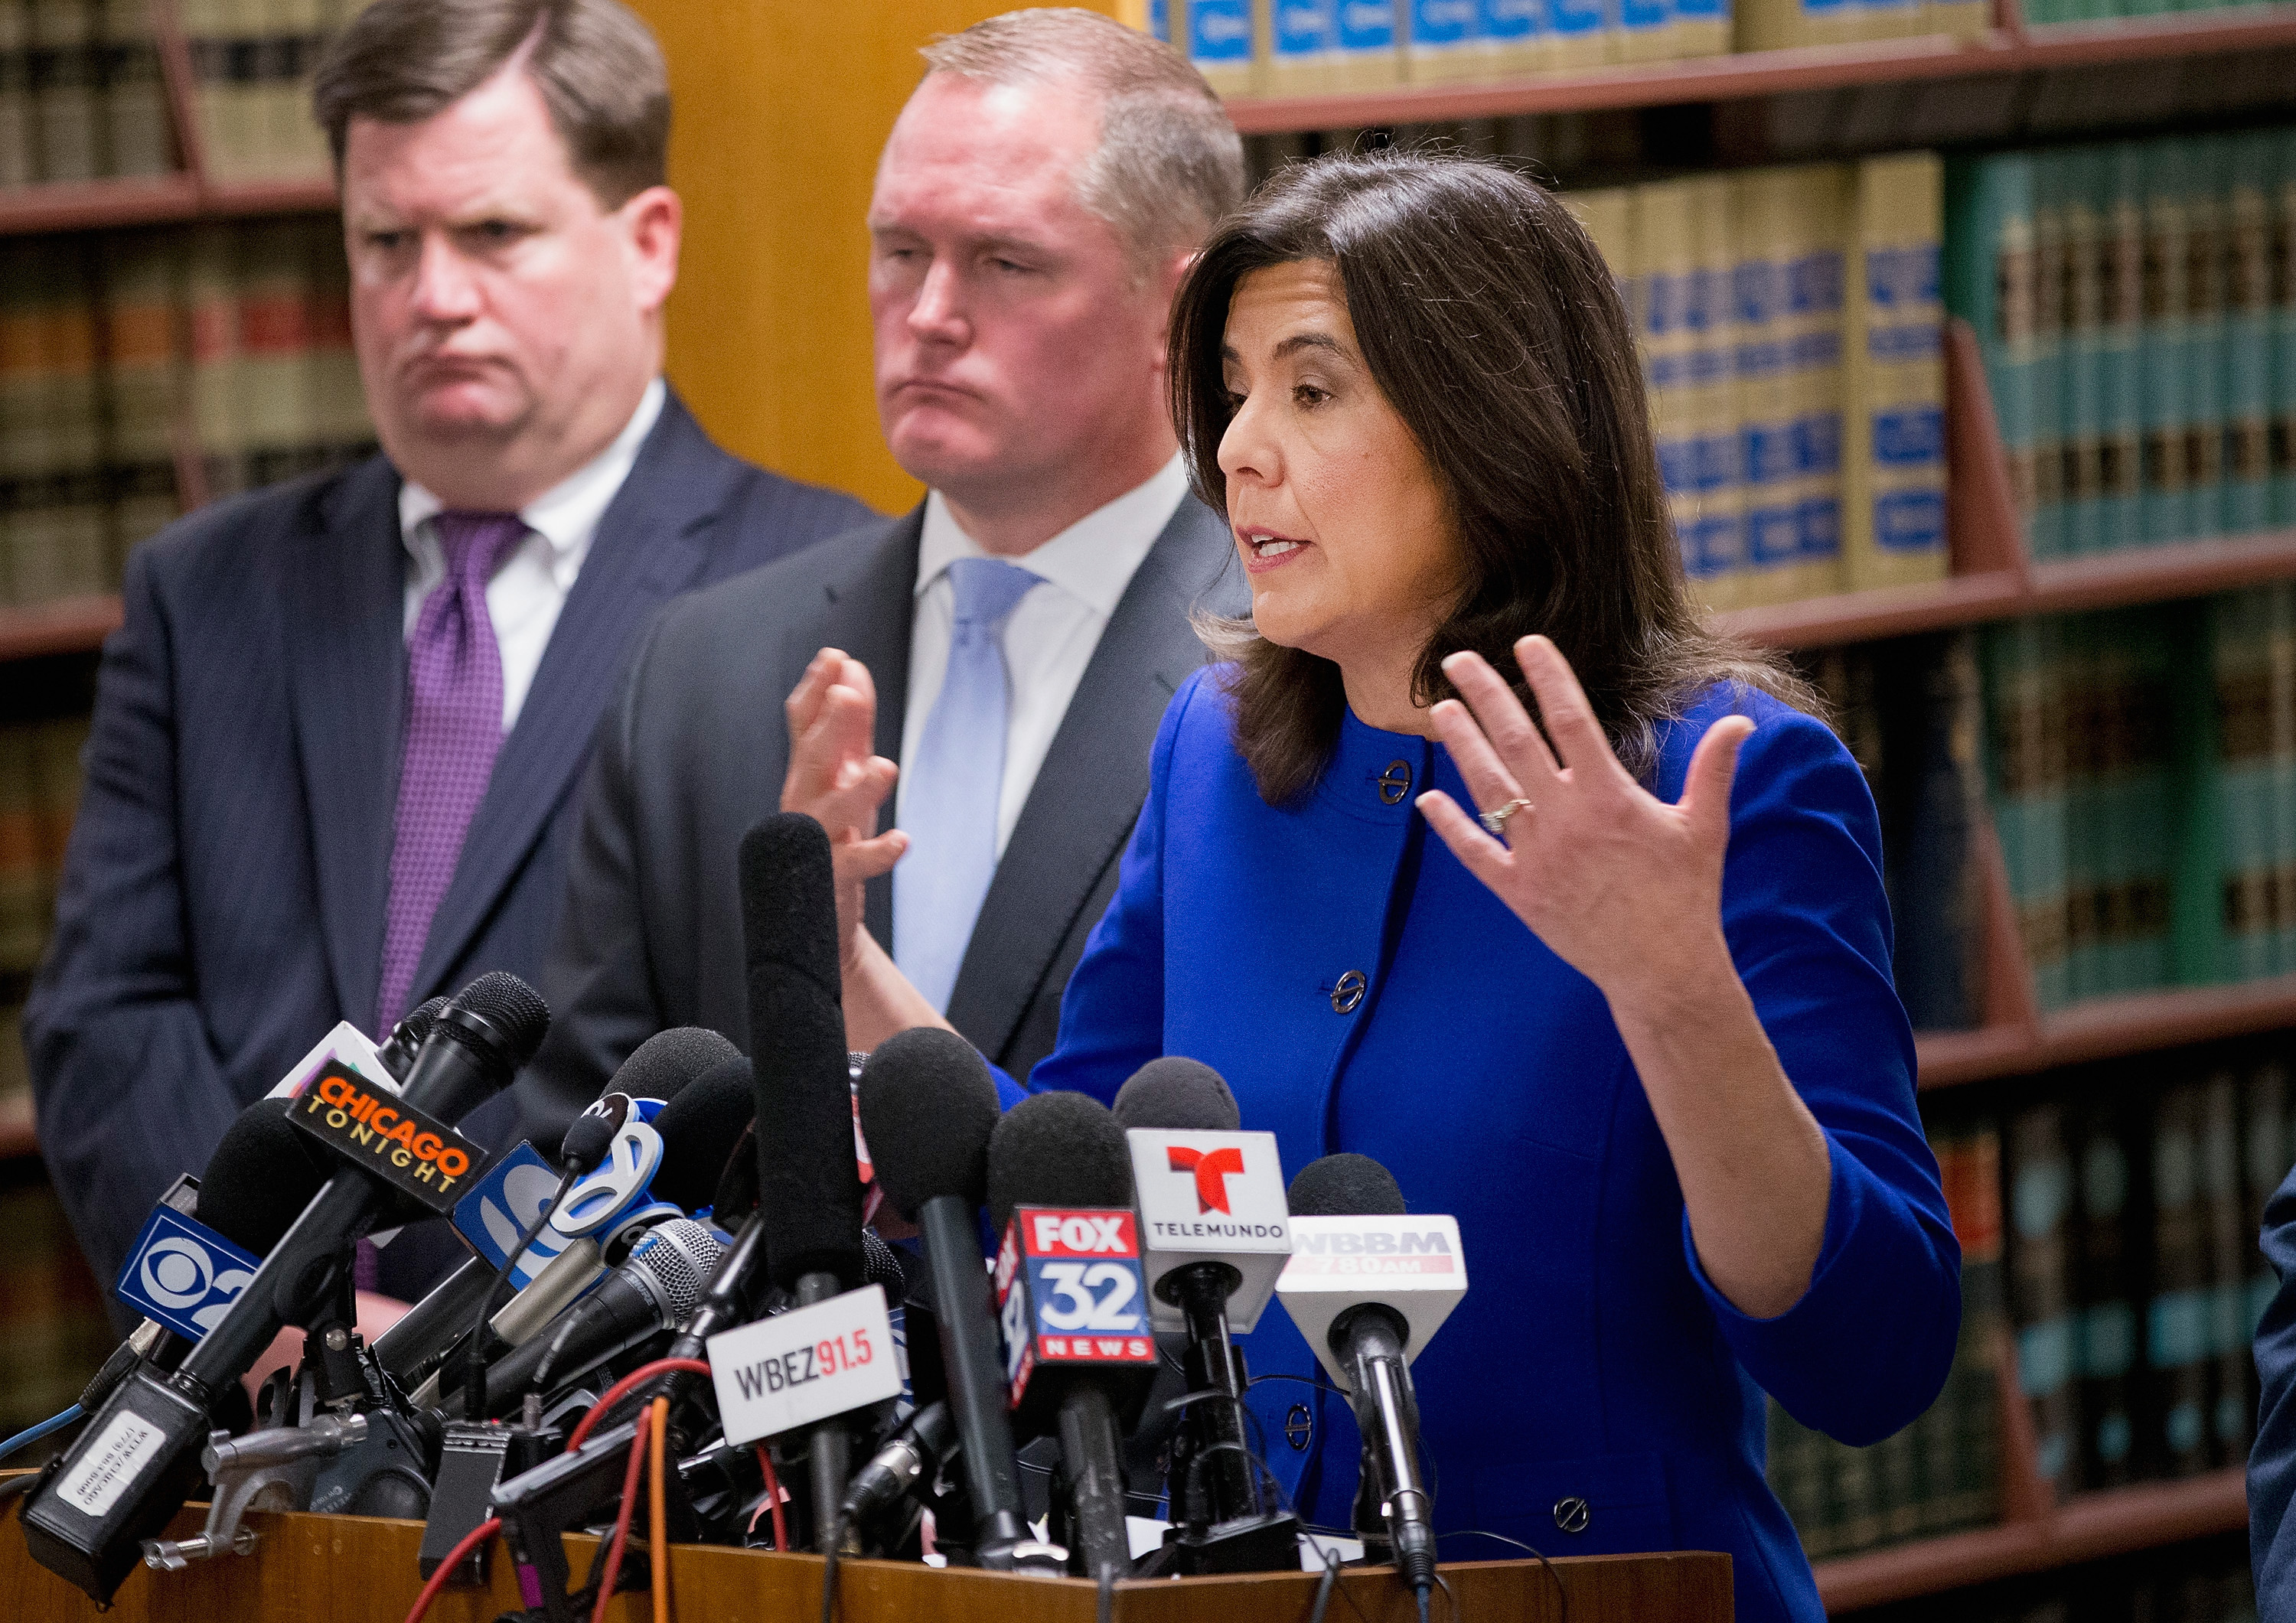 Cook County State's Attorney Anita Alvarez speaks to the media about Chicago Police officer Jason Van Dyke following a bond hearing for Van Dyke at the Leighton Criminal Courts Building in Chicago on Nov. 24, 2015.